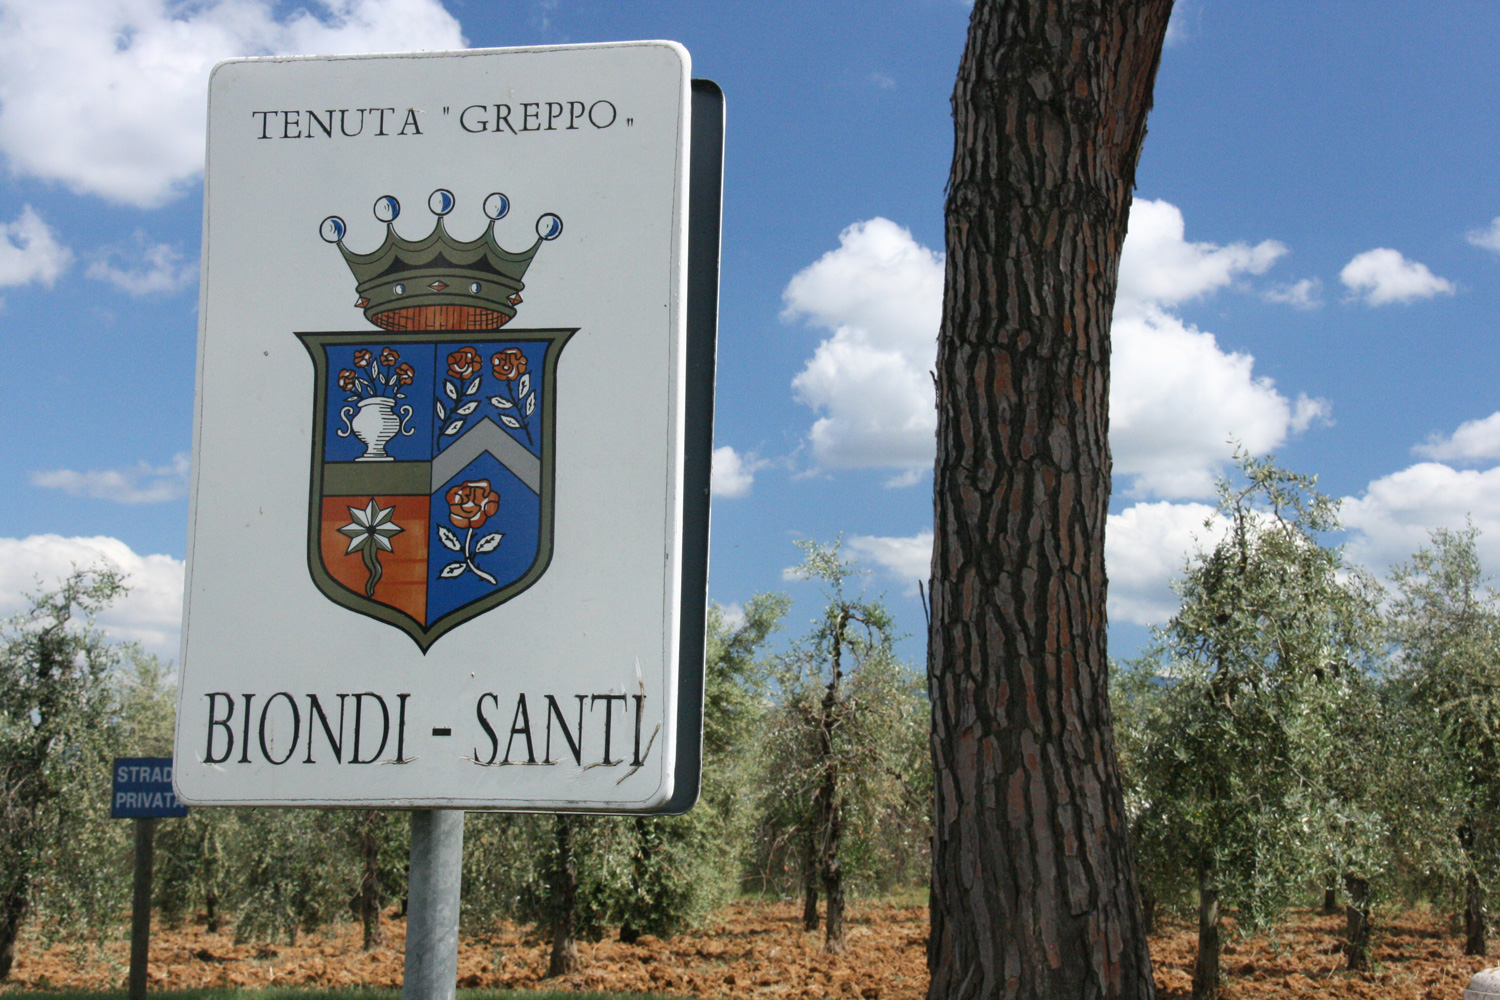 The birthplace of Brunello